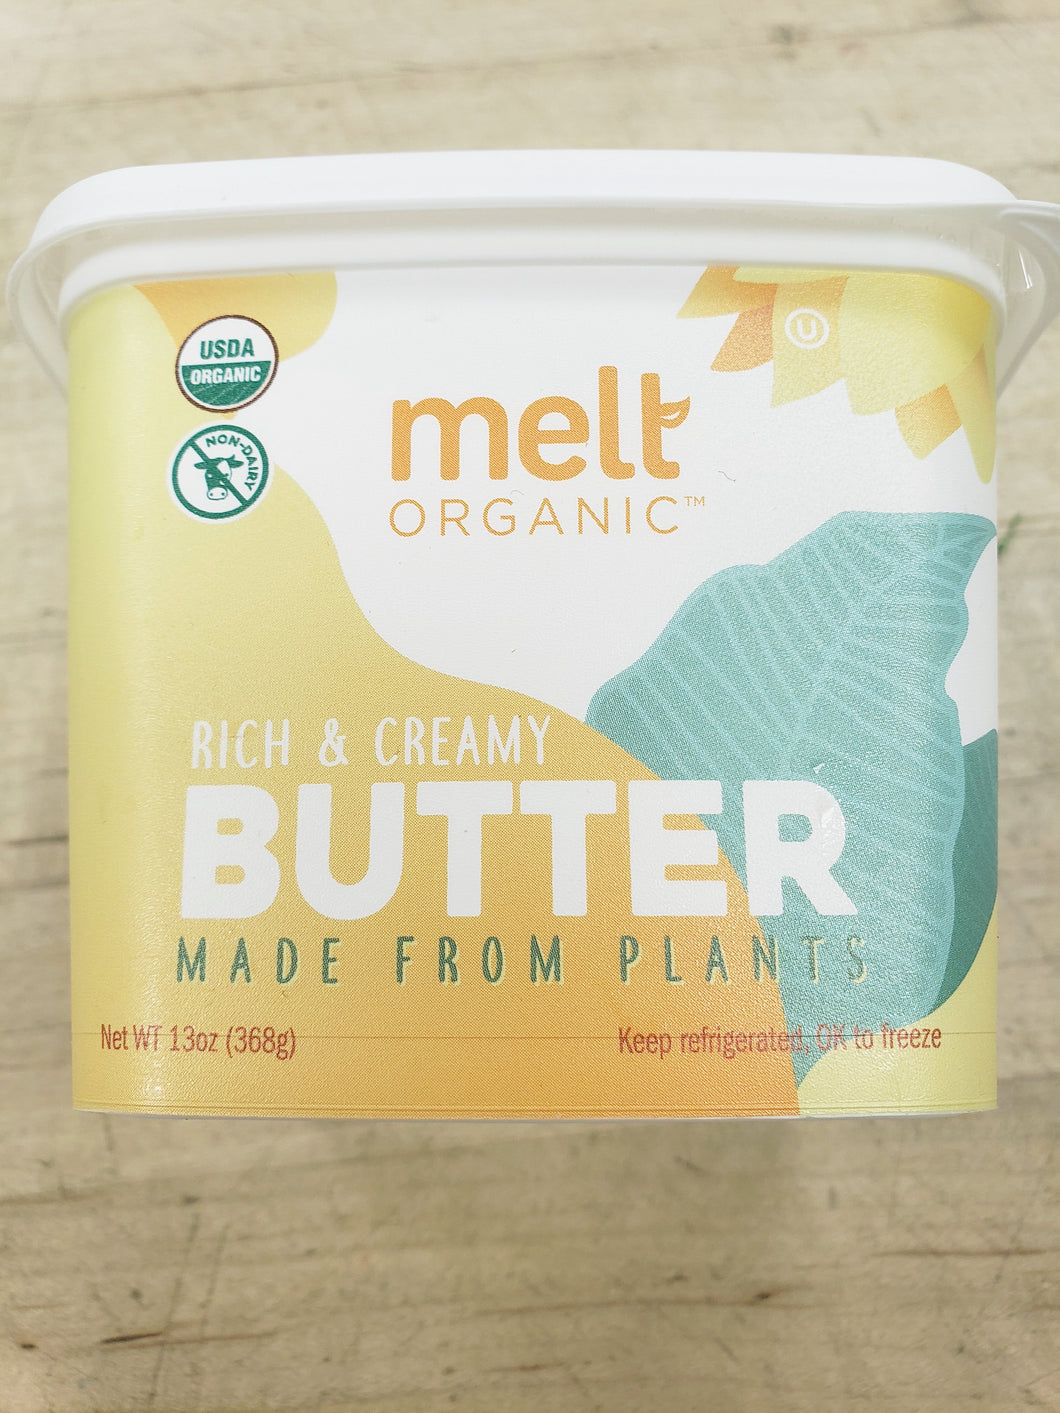 Butter, Non Dairy Plant Based, Organic, Melt GMO Free (13oz)